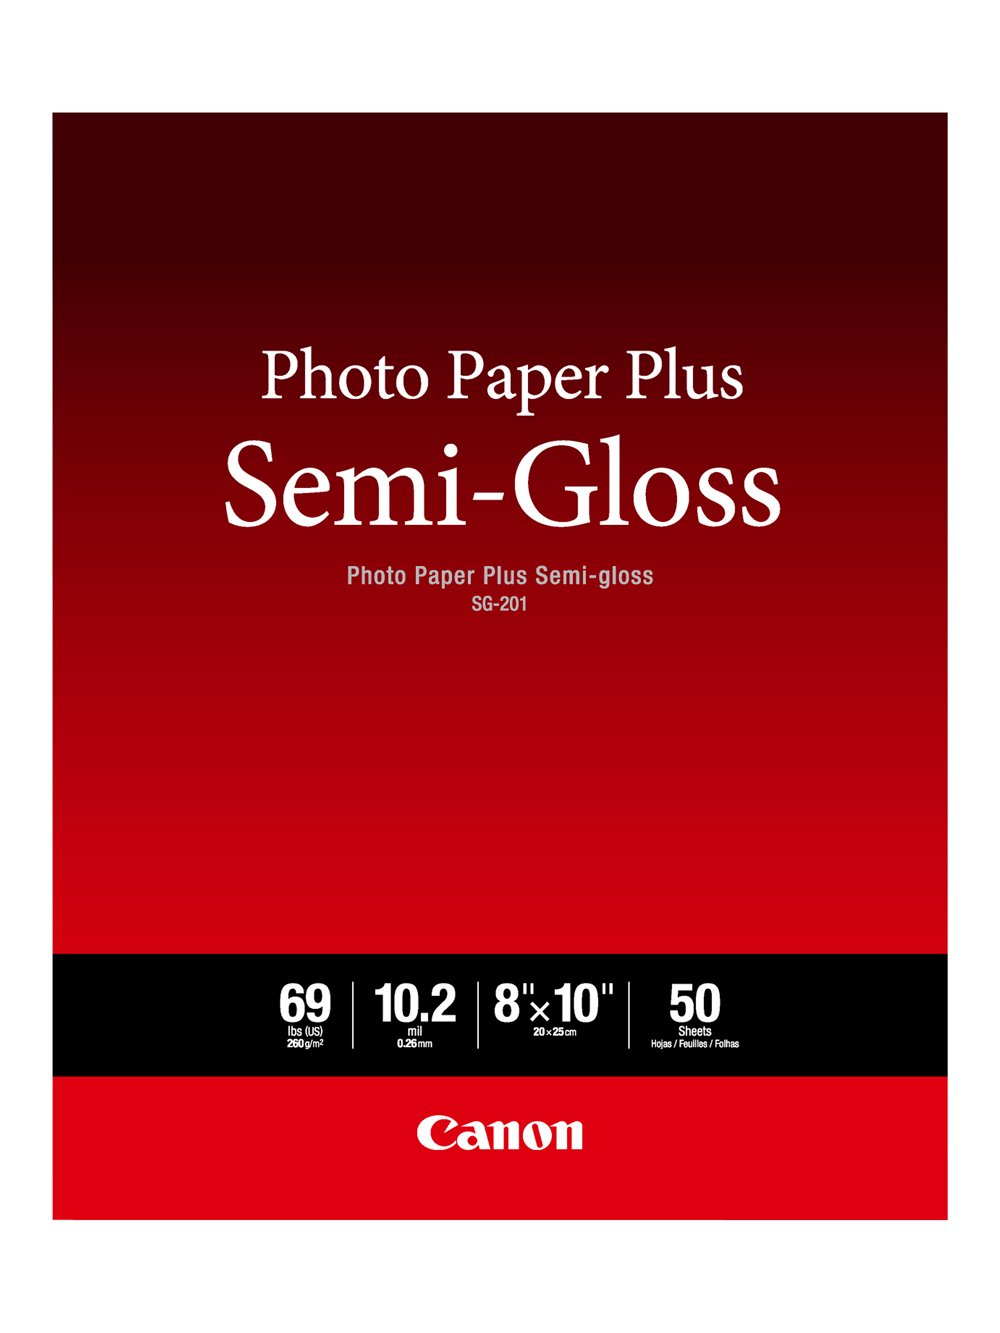 Canon Photo Paper Plus Semi-Gloss 8 x 10 (50 Sheets) (SG-201 8X10) Canon Office Products SG-201 8X10(50)